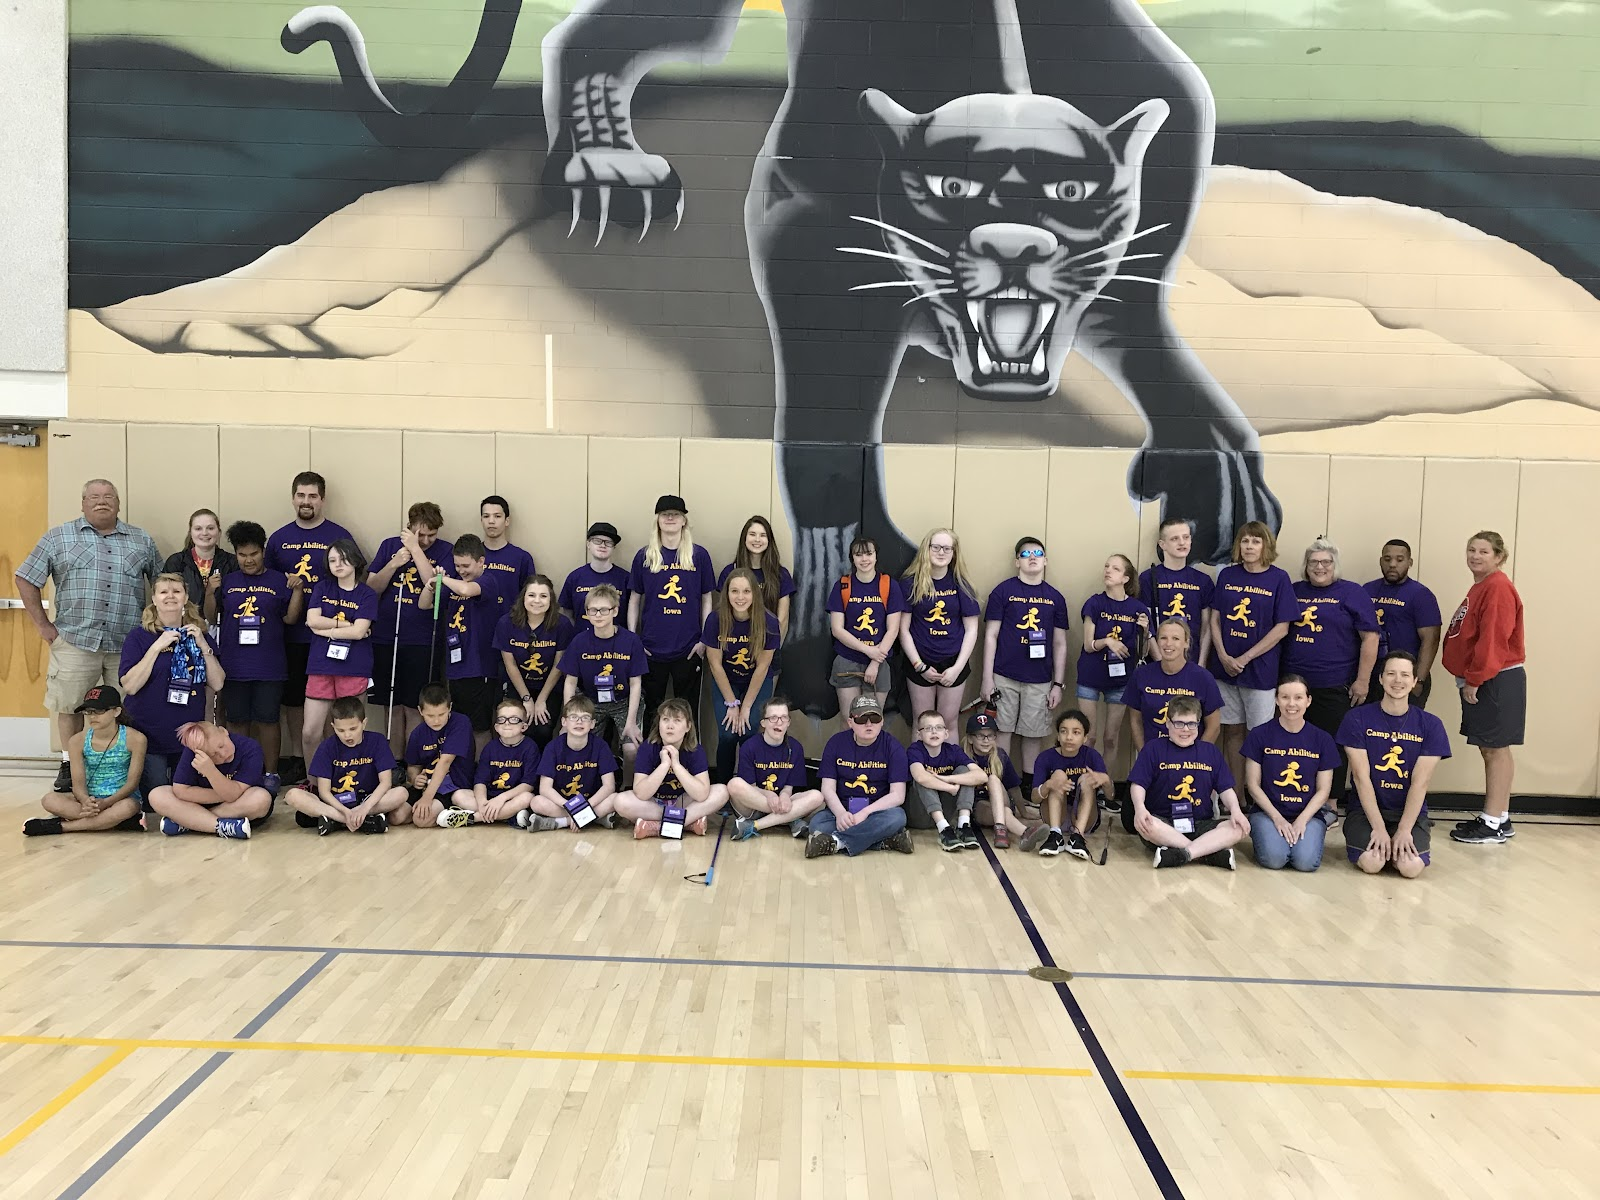 PD: Students and staff on gym floor in front of a mural of a panther at Univeristy of Northern Iowa  during 2019 Camp Abilities.